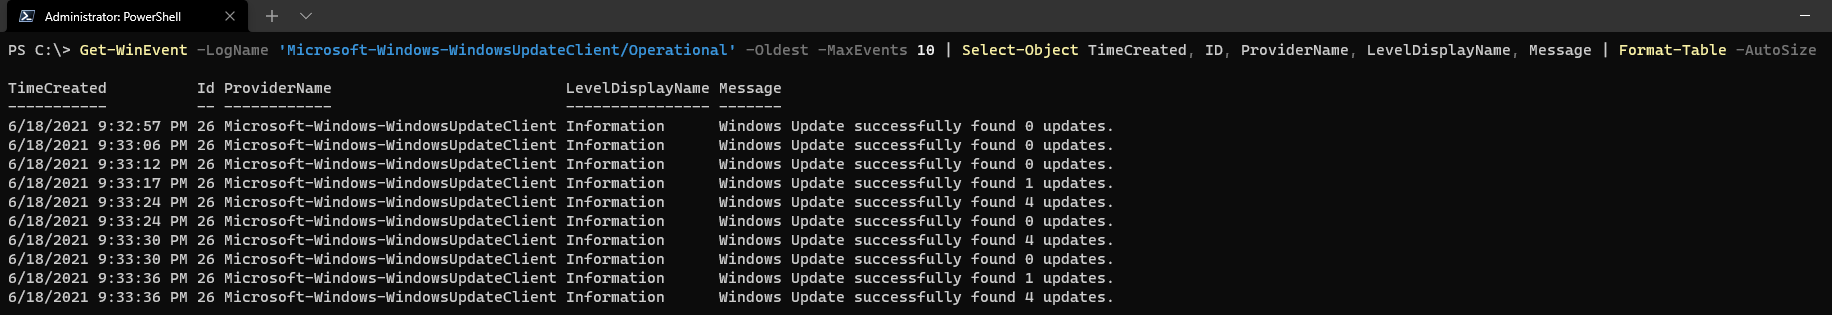 Returning only the oldest events in a Windows Event Log.